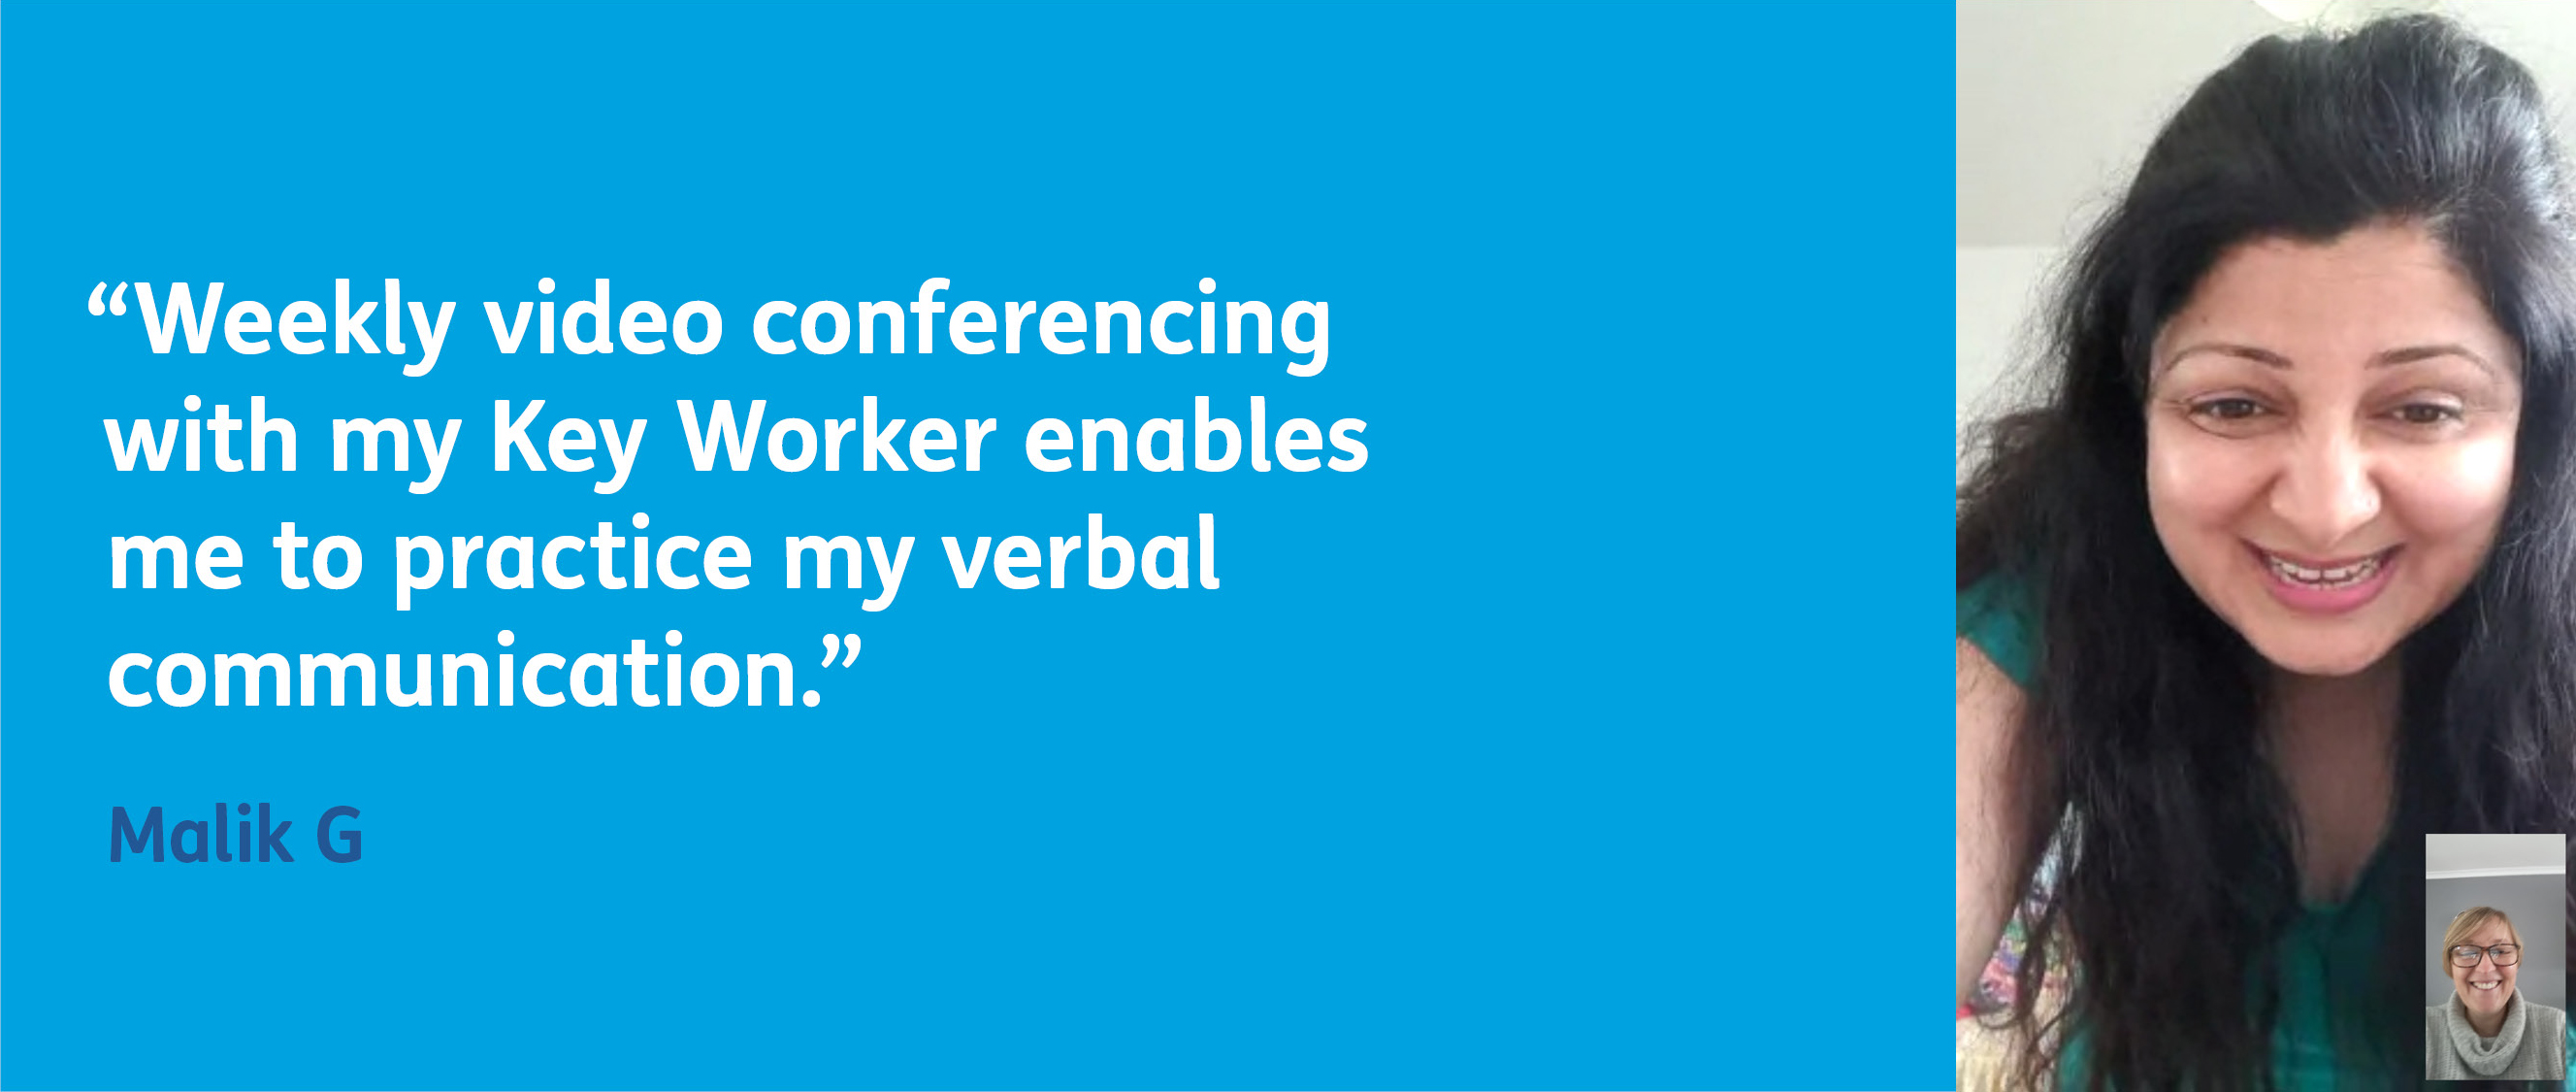 Malik says: Weekly video conferencing with my Key Worker enables me to practice my verbal communication